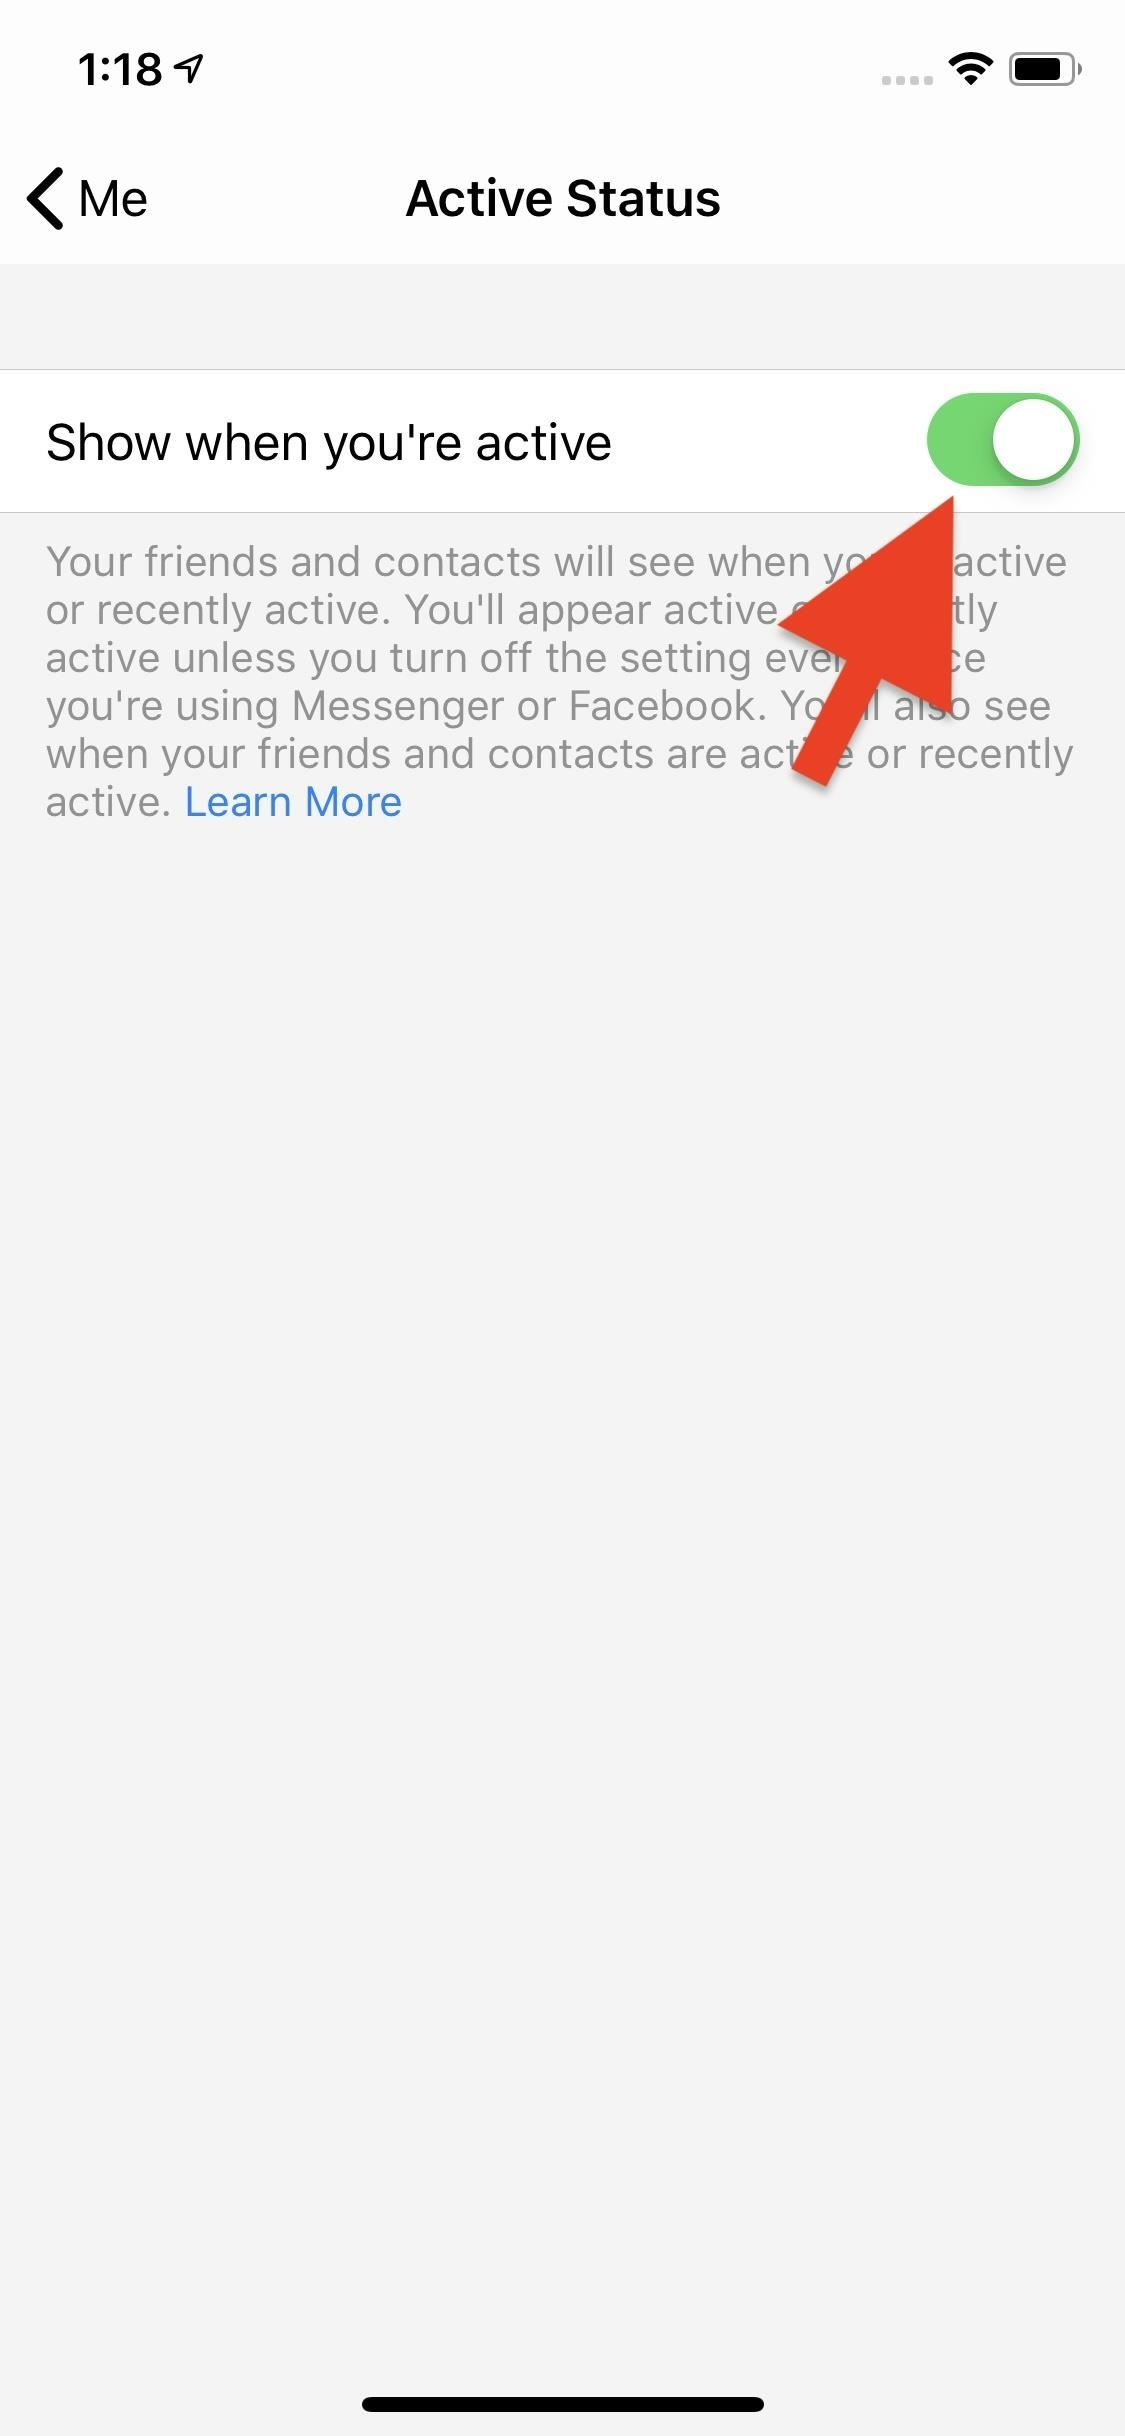 How to Hide Your Active Status in Facebook Messenger to Go Incognito Online